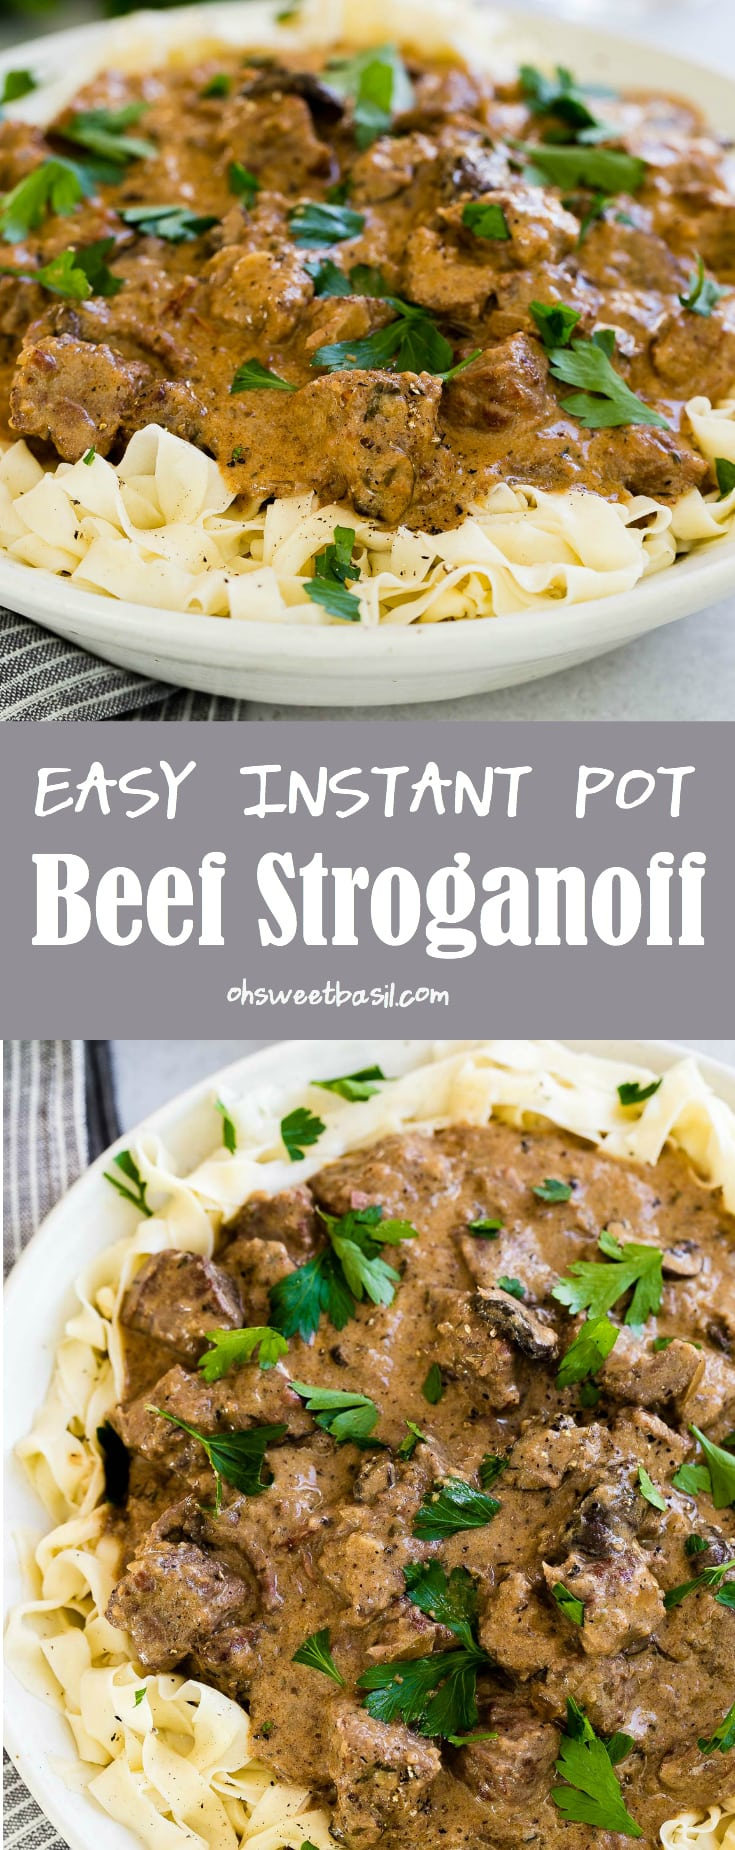 The BEST recipe for Easy Instant Pot Beef Stroganoff, everything you need to know about making beef stroganoff in a slow cooker or instant pot.